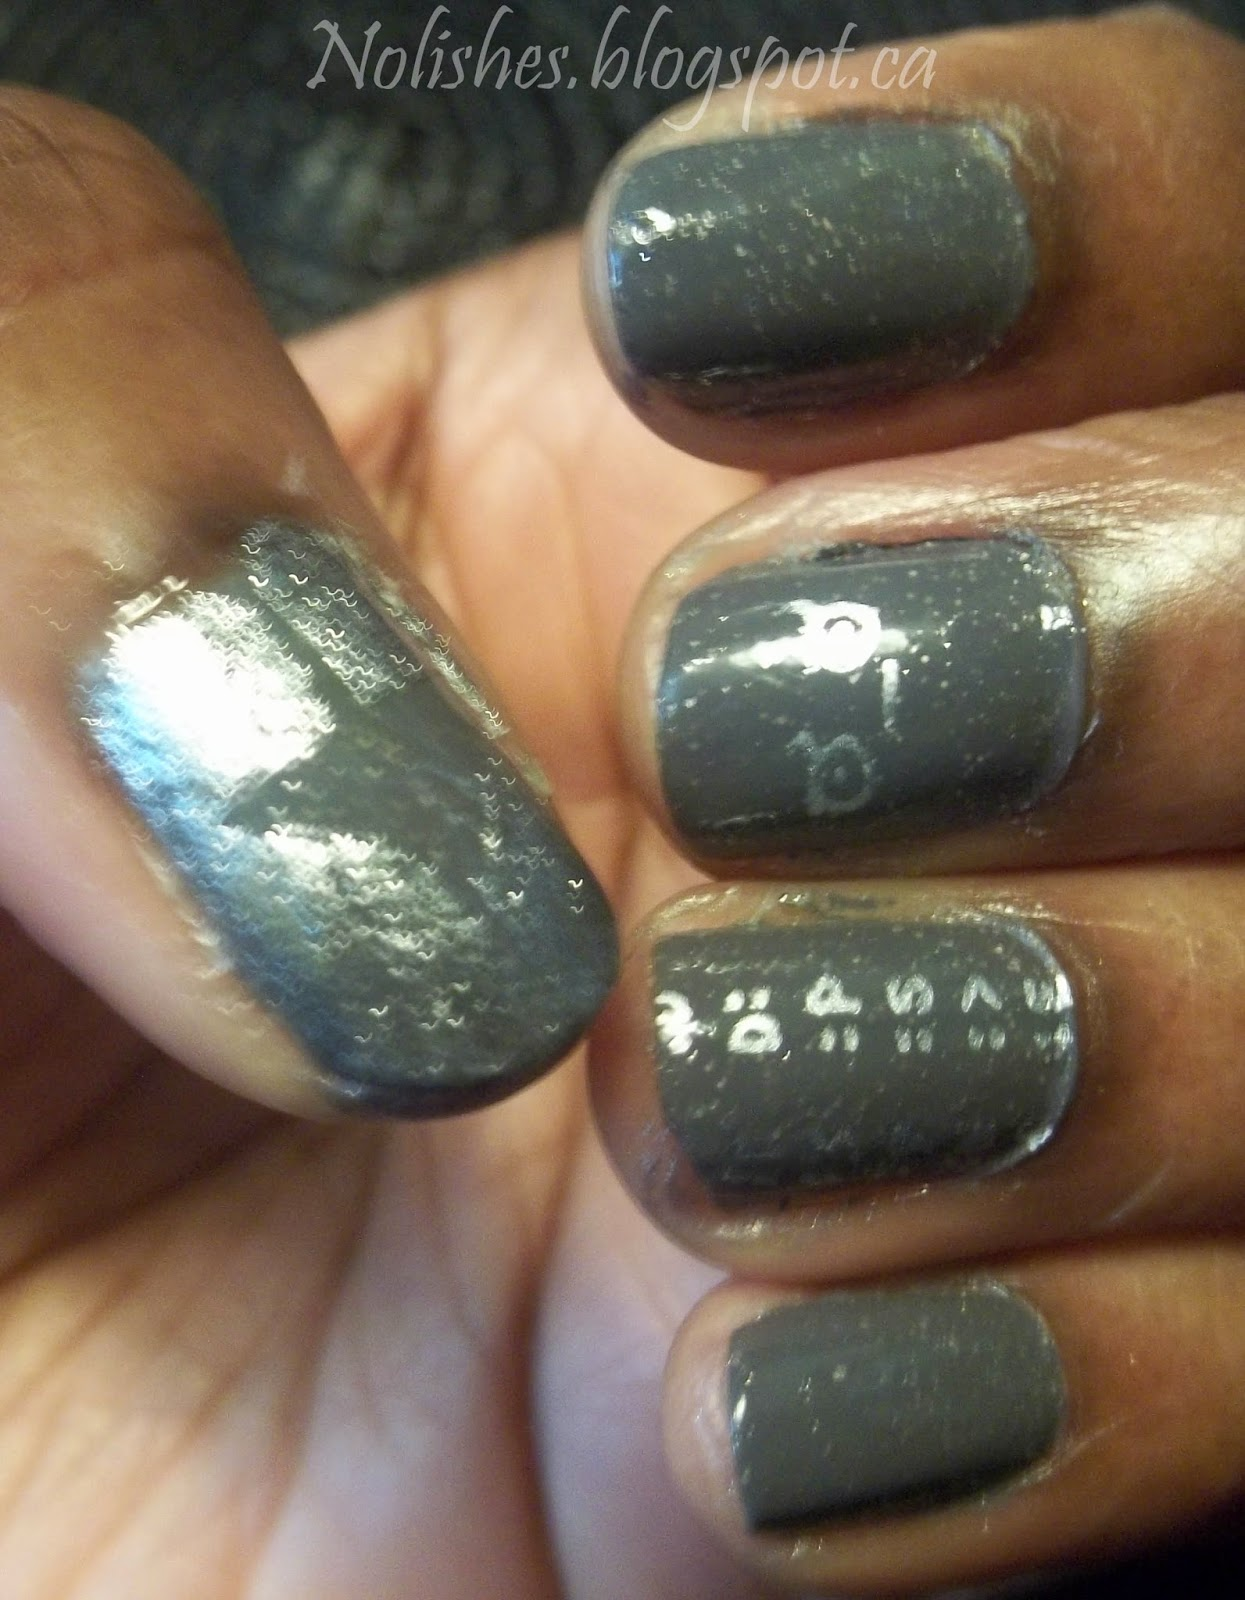 Nail stamping manicure featuring grey nail polish with silver microglitters stamped with silver emoticon images on ring and middle fingers. The thumbnail has silver shatter polish over the grey base colour, but a triangle of grey base polish with no shatter topcoat, remains in the centre of the nail.